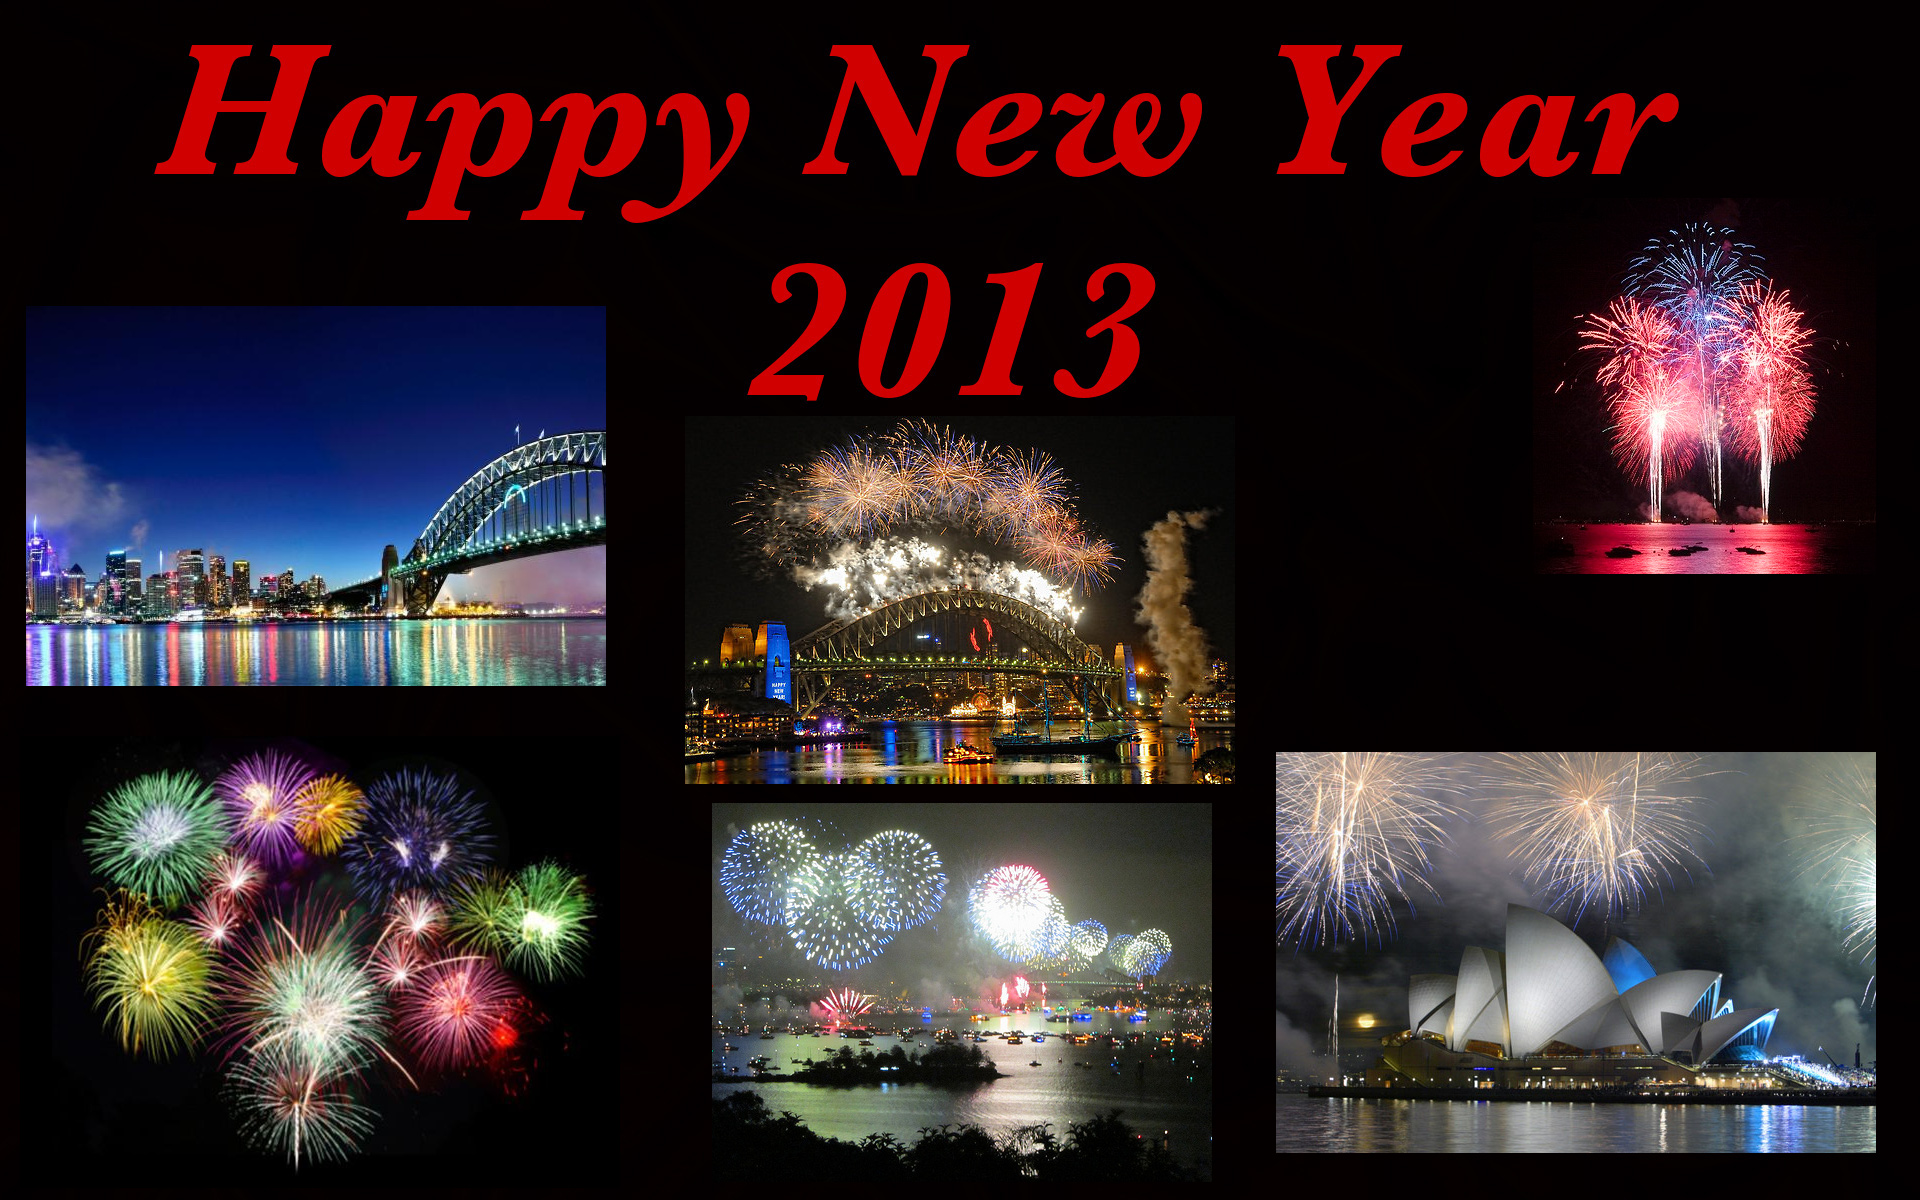 gimp images happy new year 2013 hd wallpaper and background photos